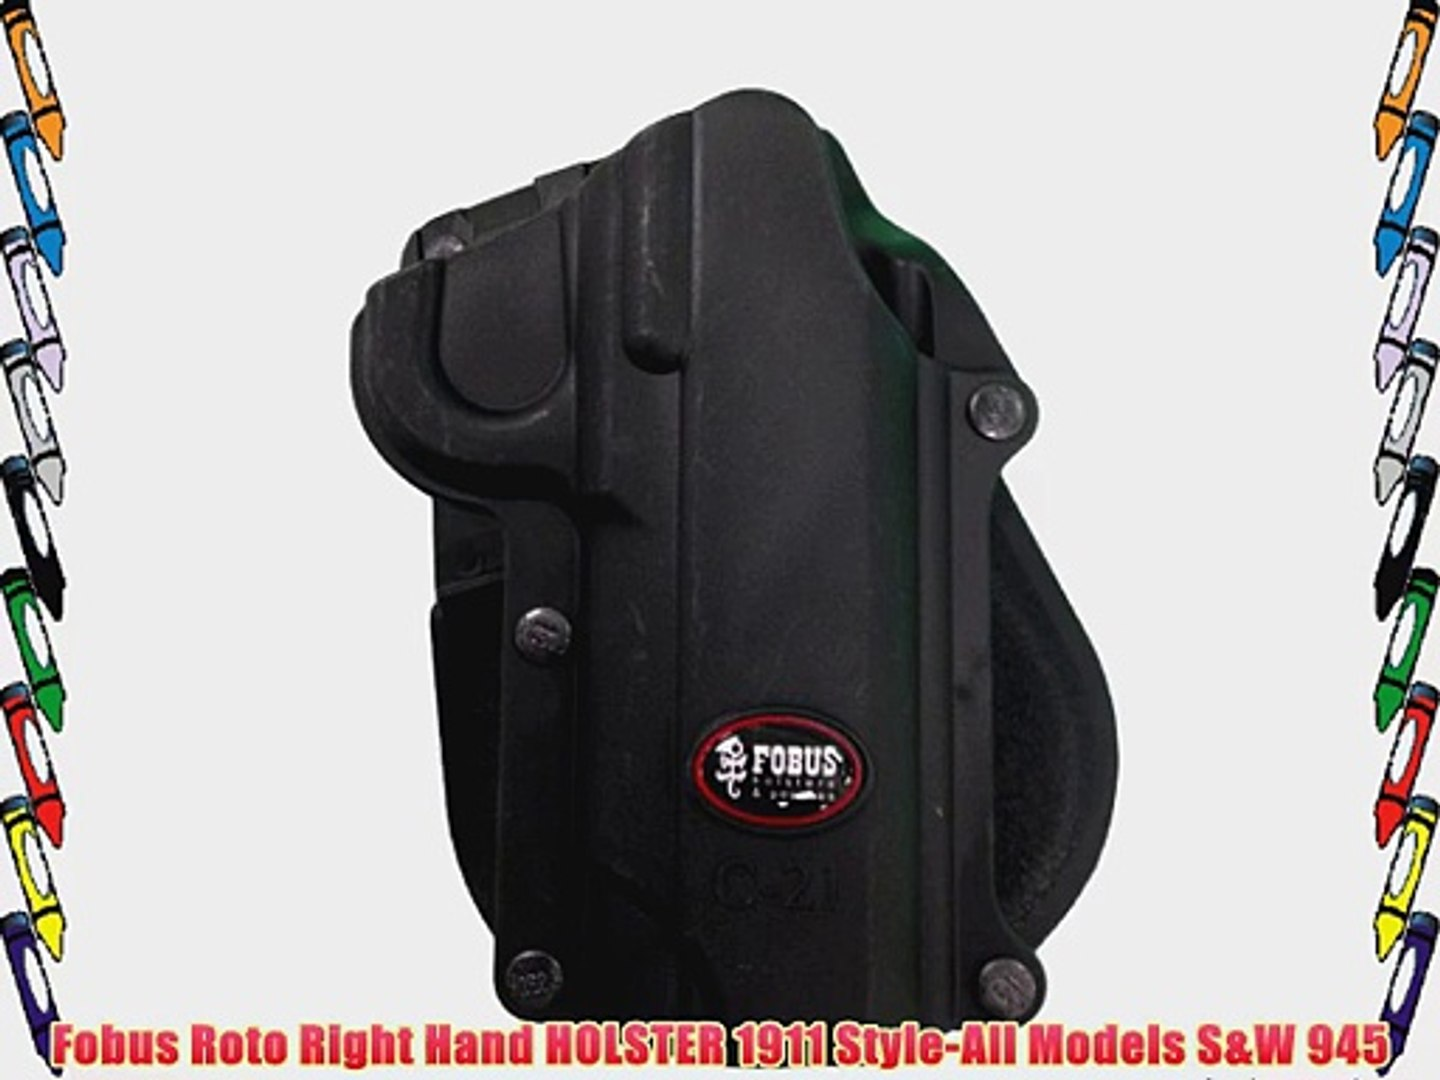 Fobus Roto Holster RH Paddle C21RP 1911 Style-All Models / S